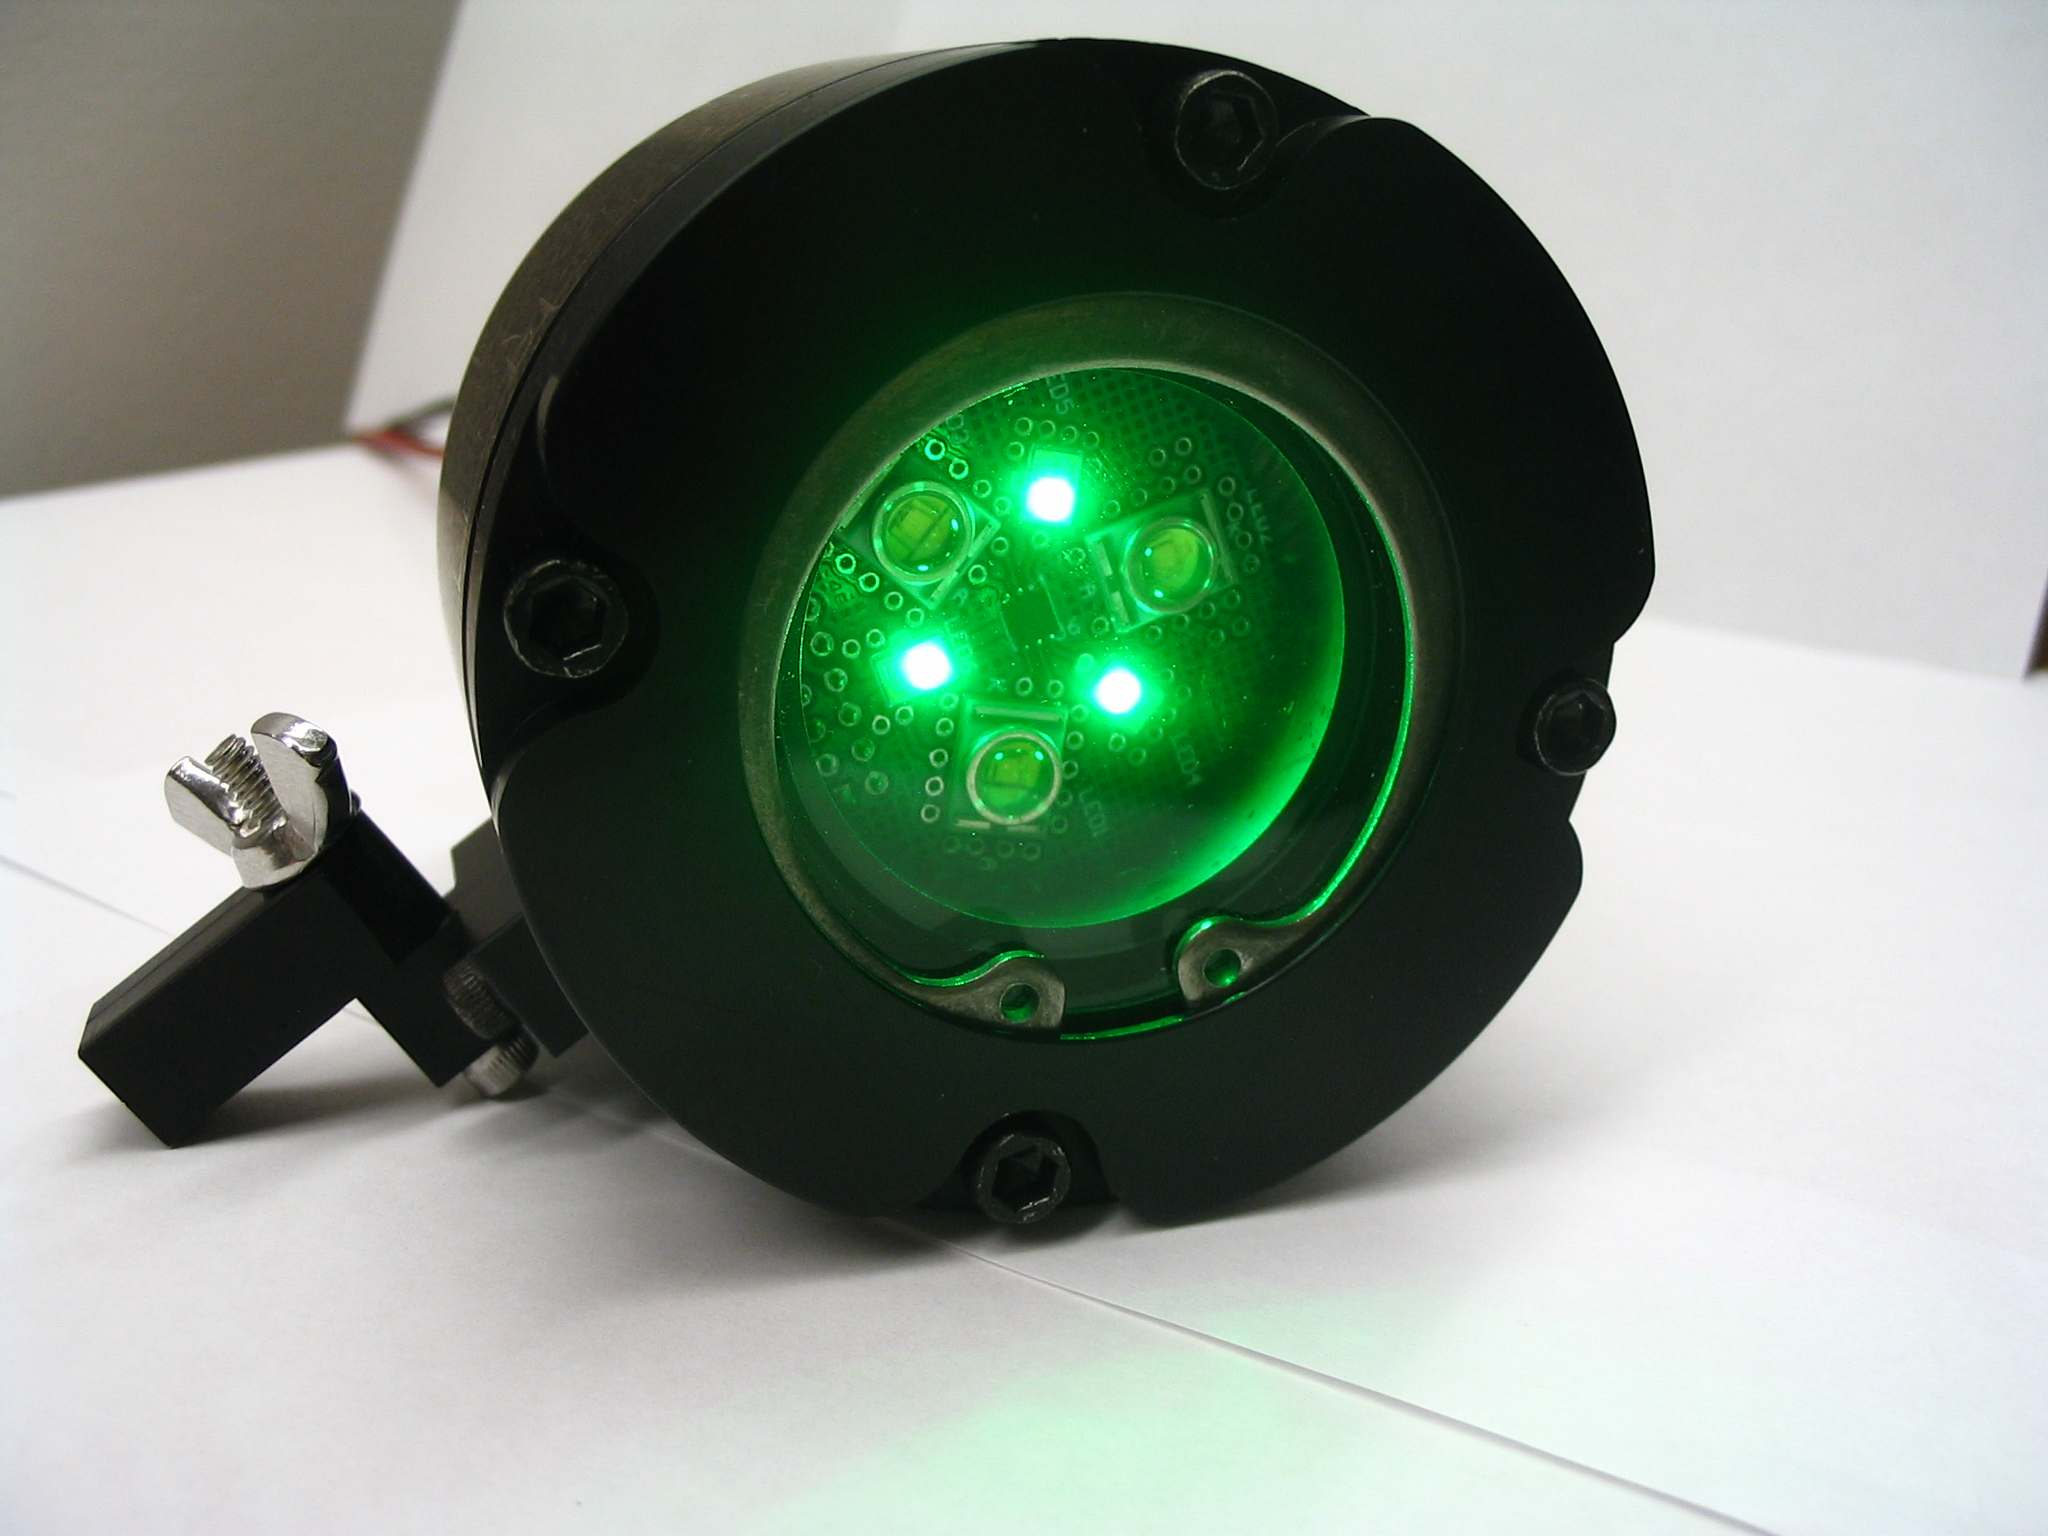 Anodized light unit with green LEDs on very low intensity